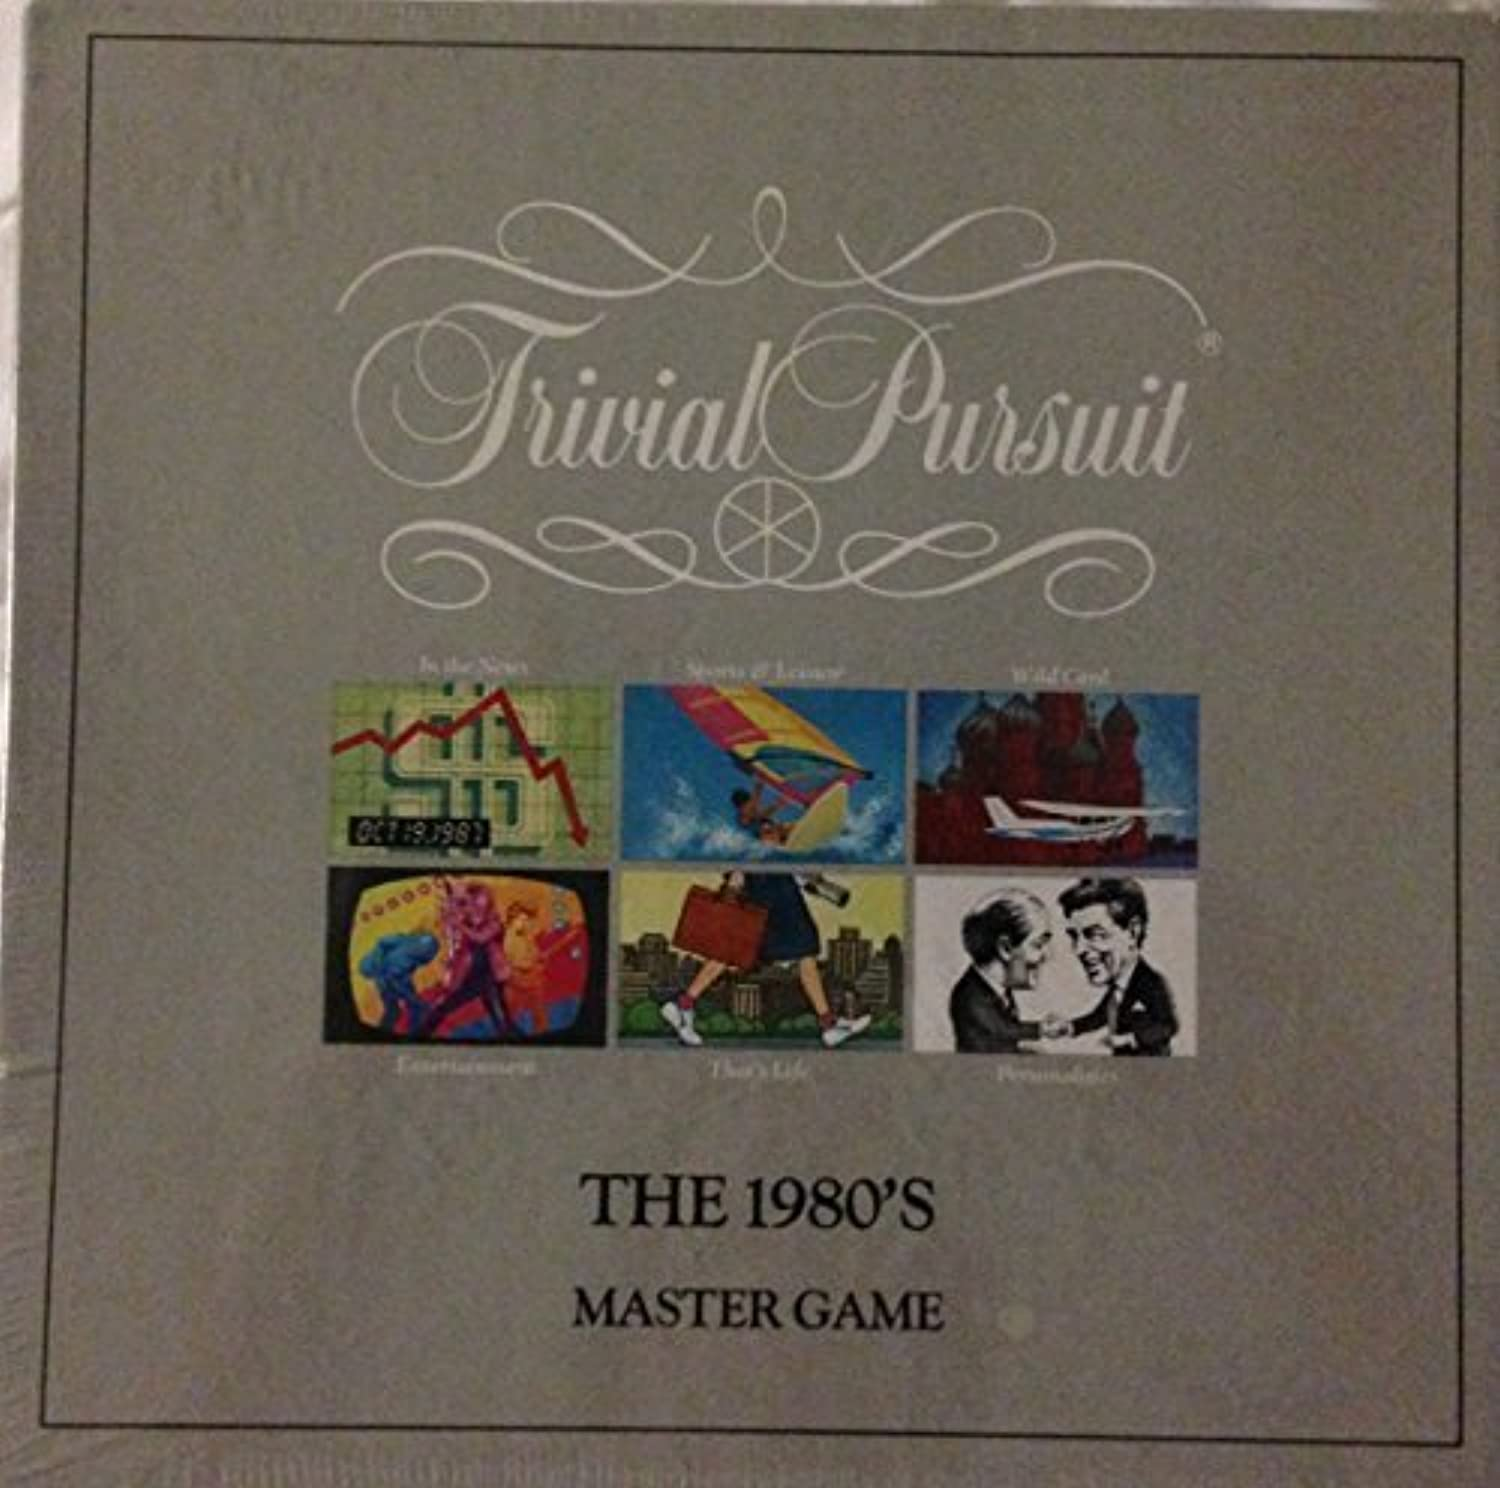 Trivial Pursuit  The 1980's Master Game by Trivial Pursuit